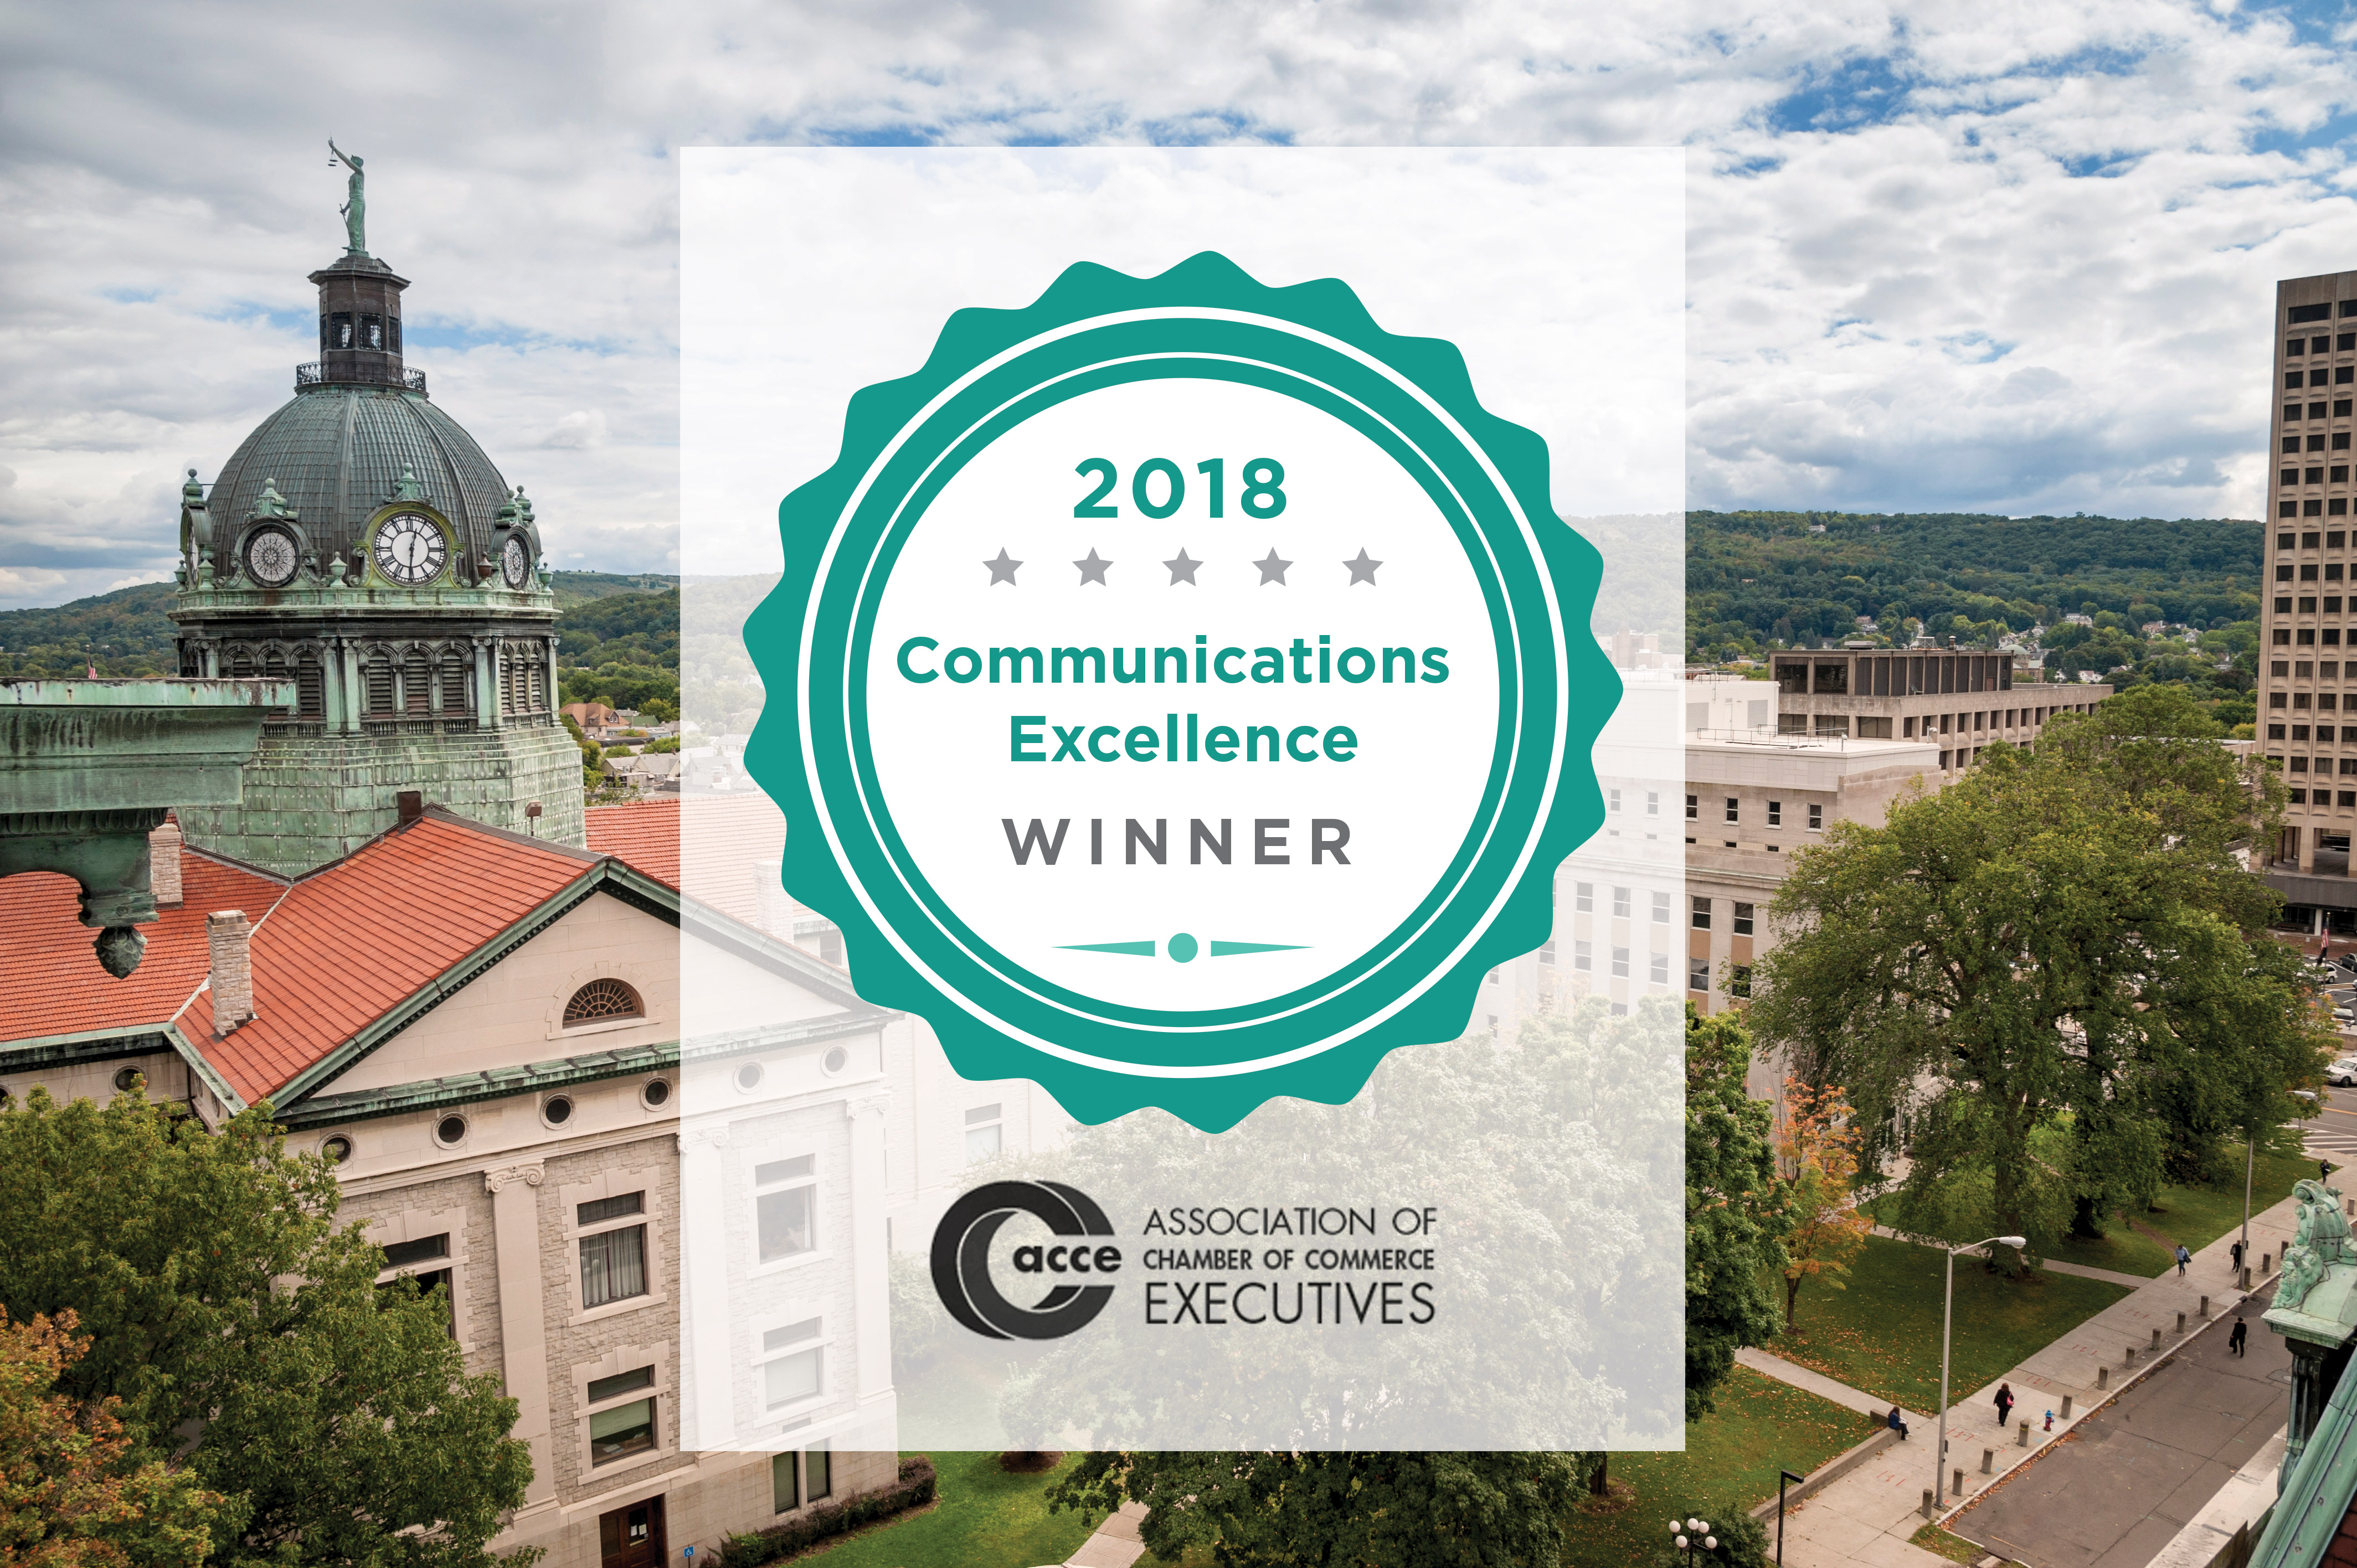 2018 Communications Excellence Winner award from the Association of Chamber of Commerce Executives for the Greater Binghamton Chamber of Commerce branding project placed on a photo of downtown Binghamton, NY courthouse